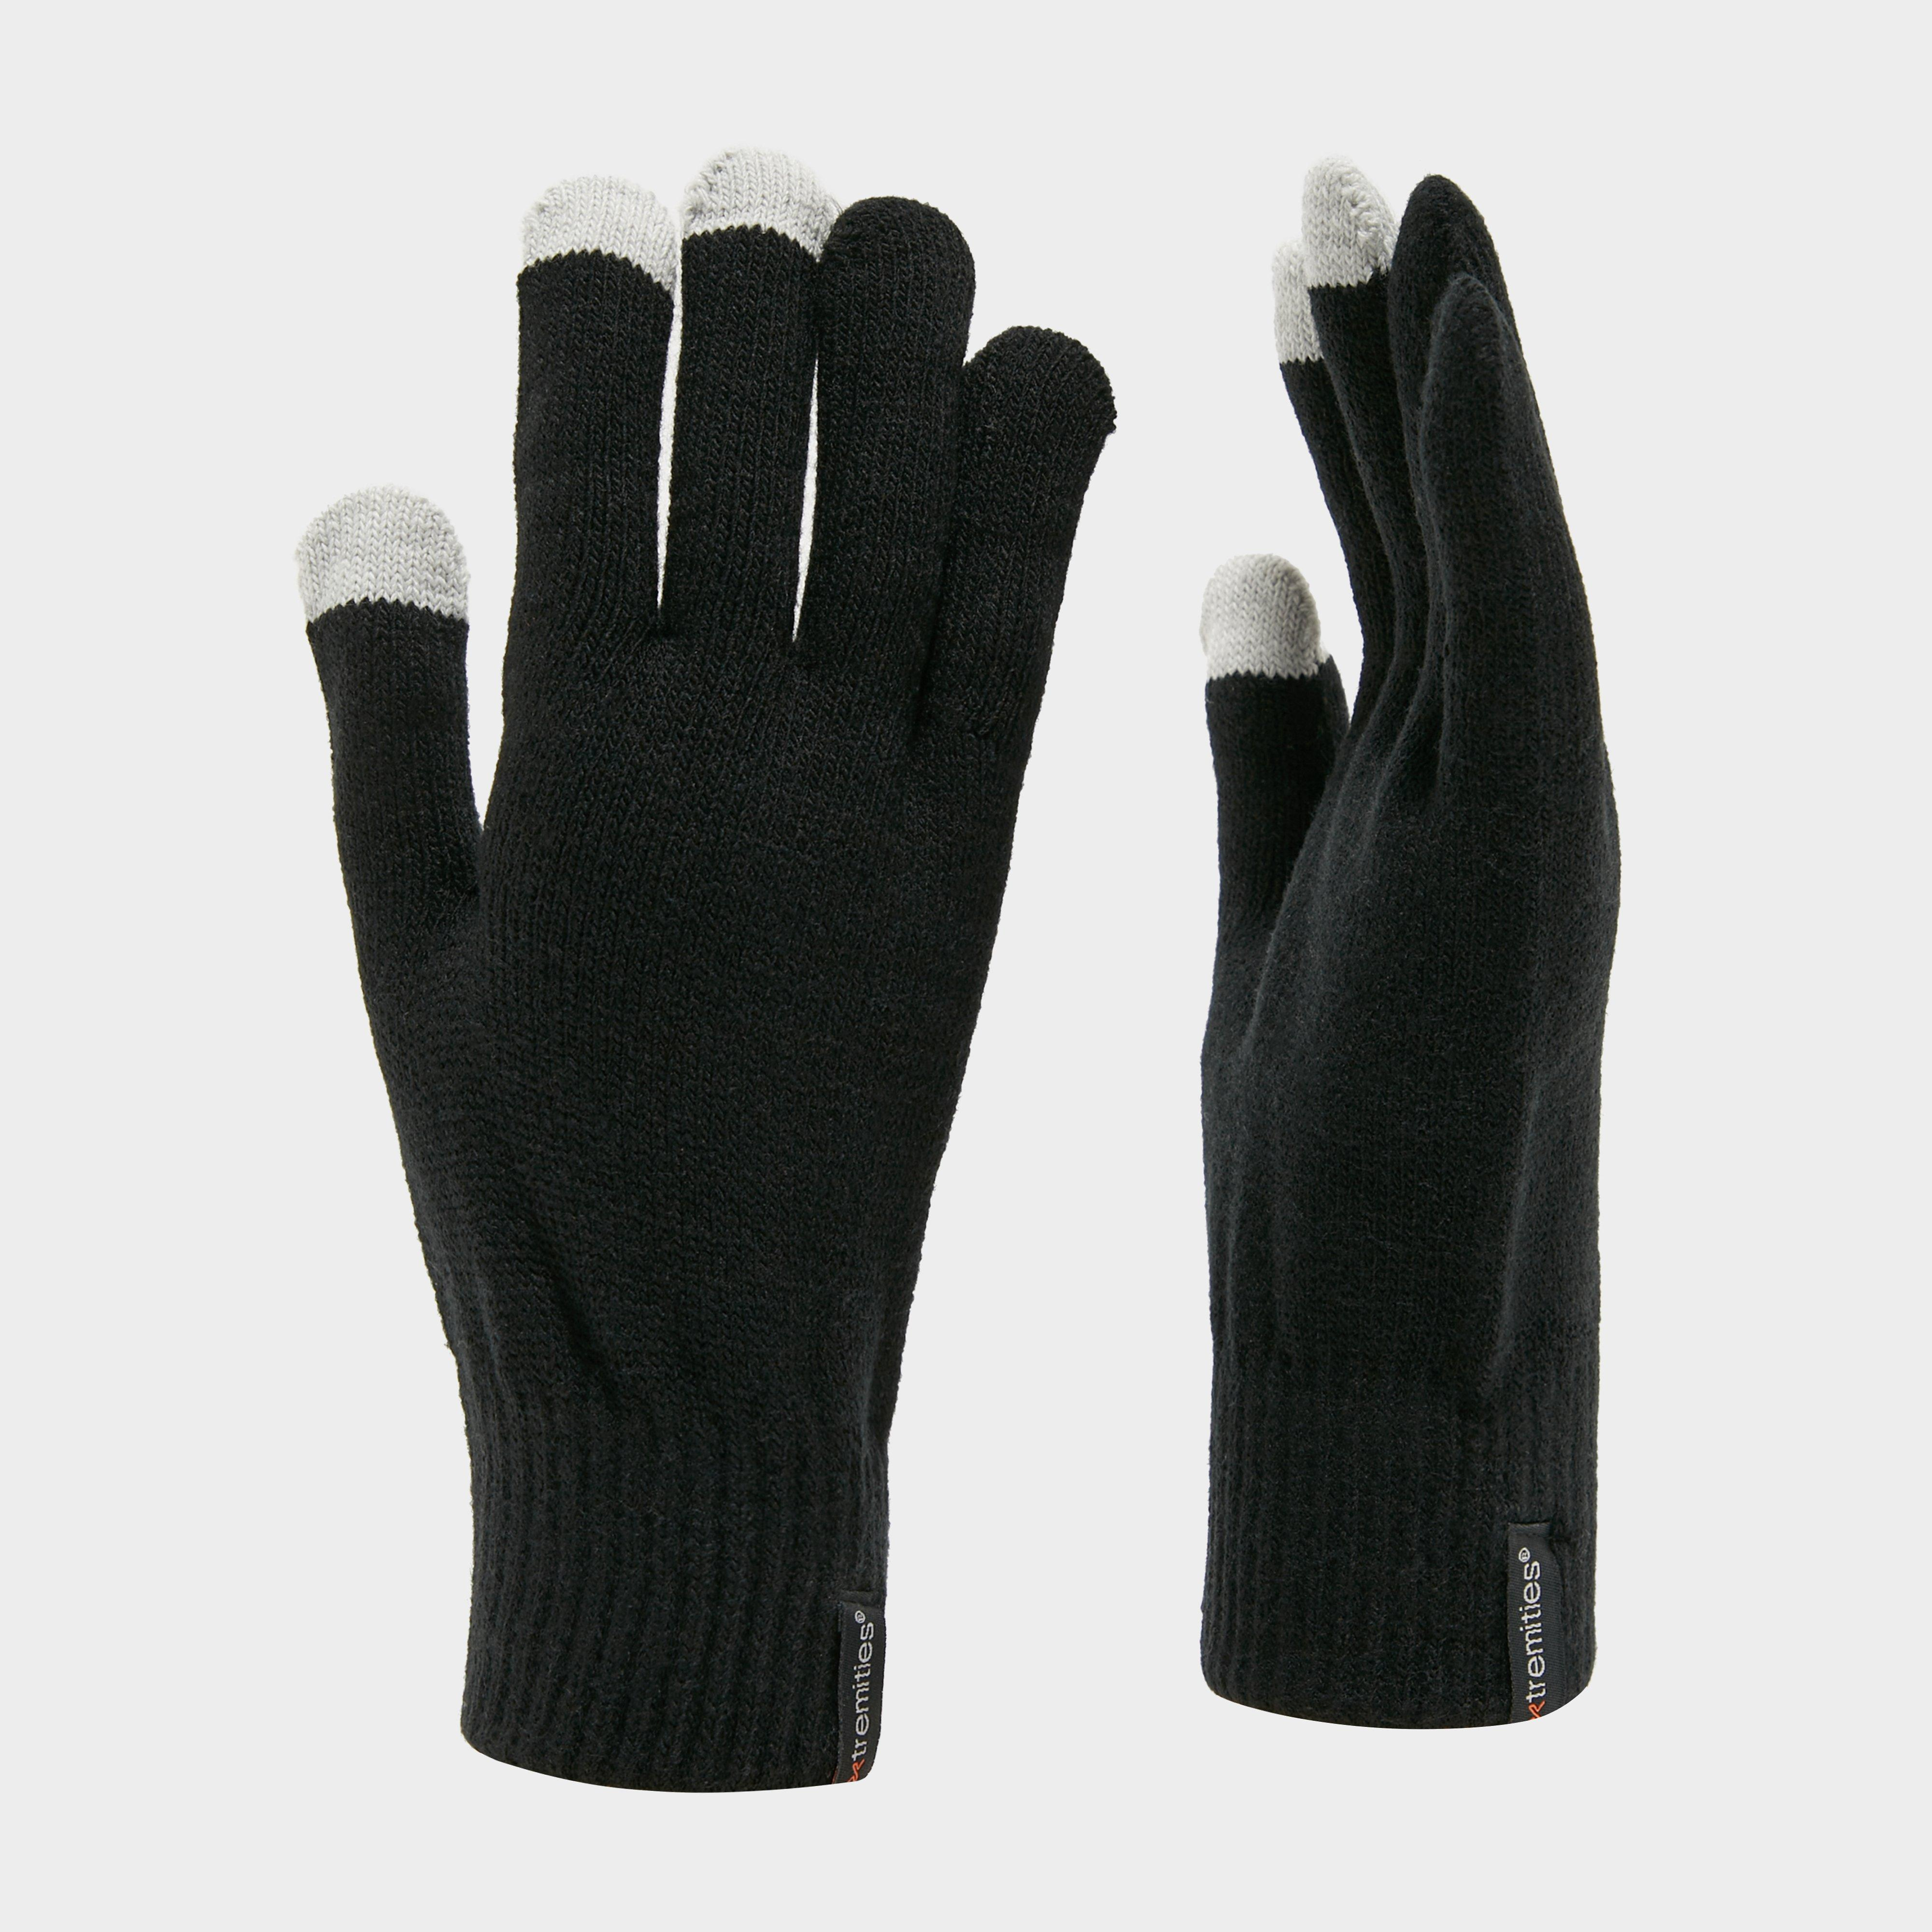 Extremities Thinny Touch Glove - Black, Black